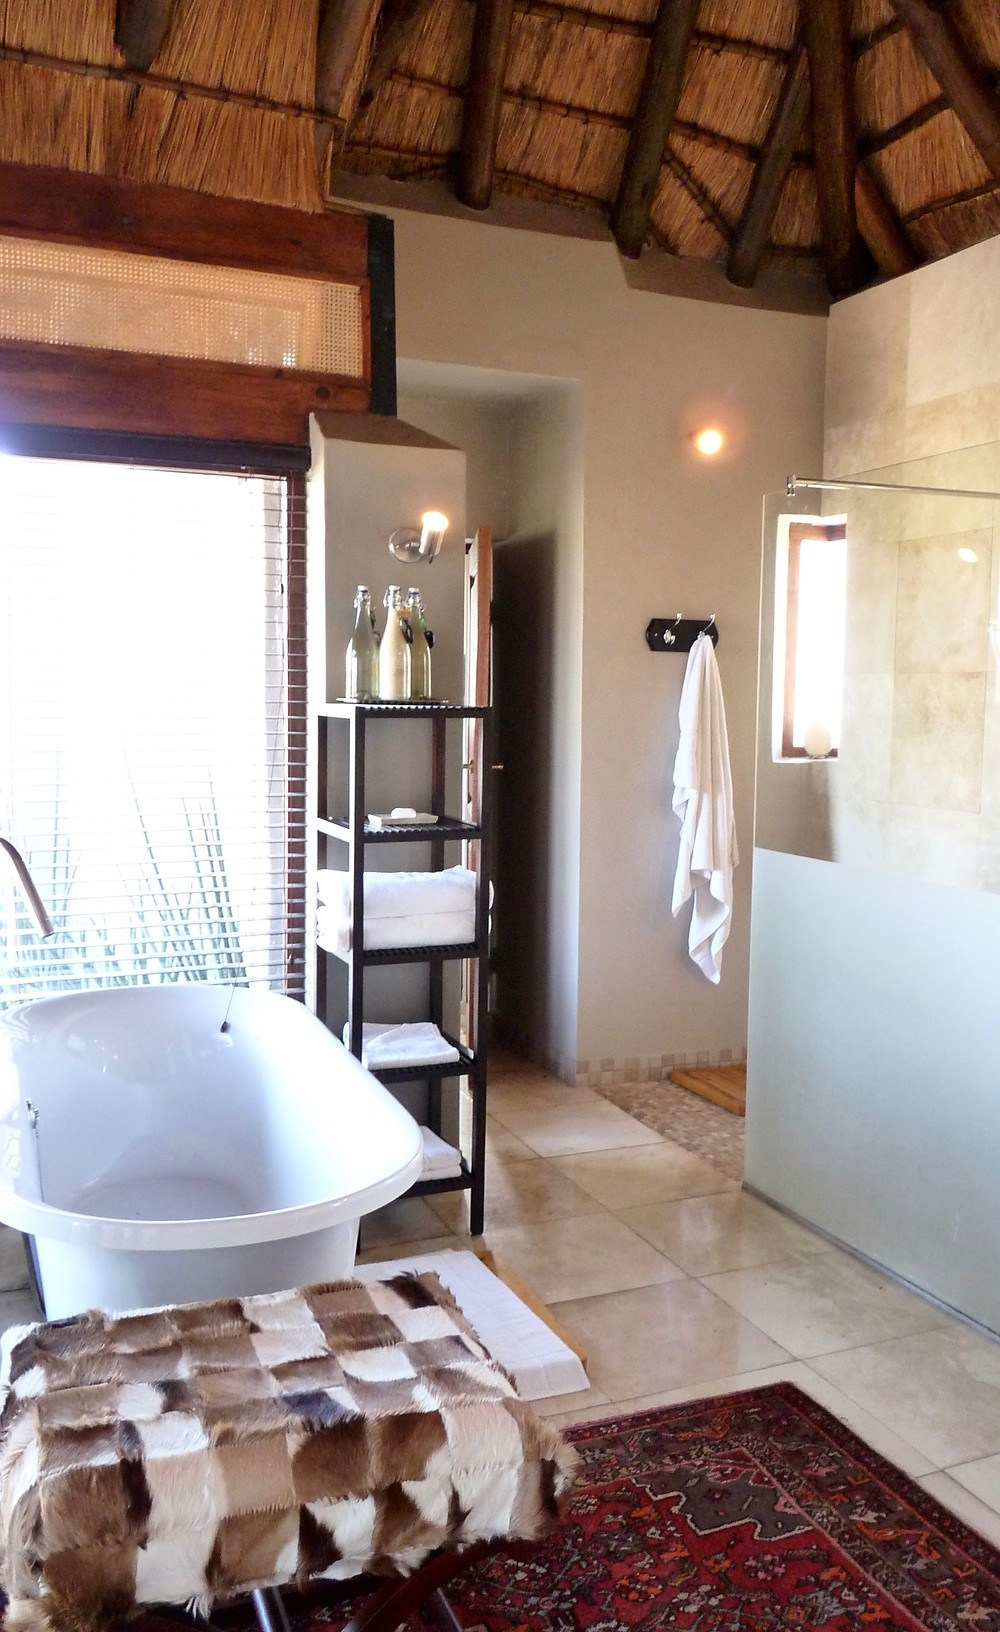 Bathroom at #JamalaMadikwe